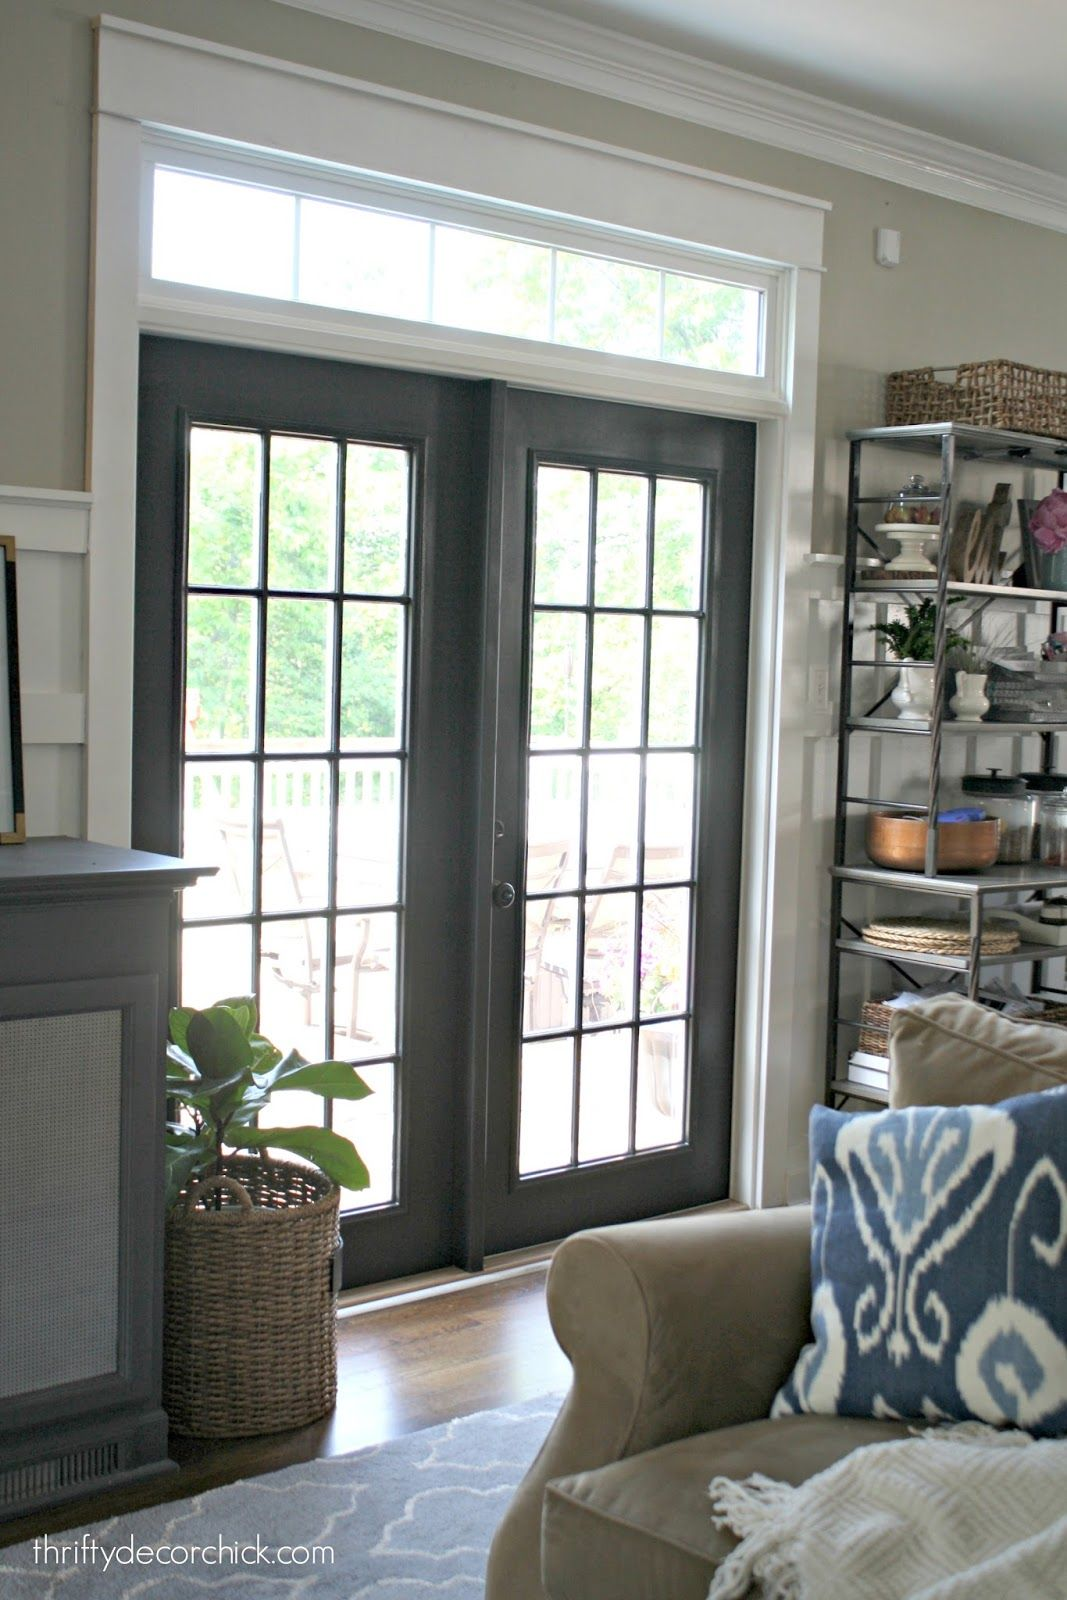 Patio doors or french doors which is best - Black French Doors With Transom